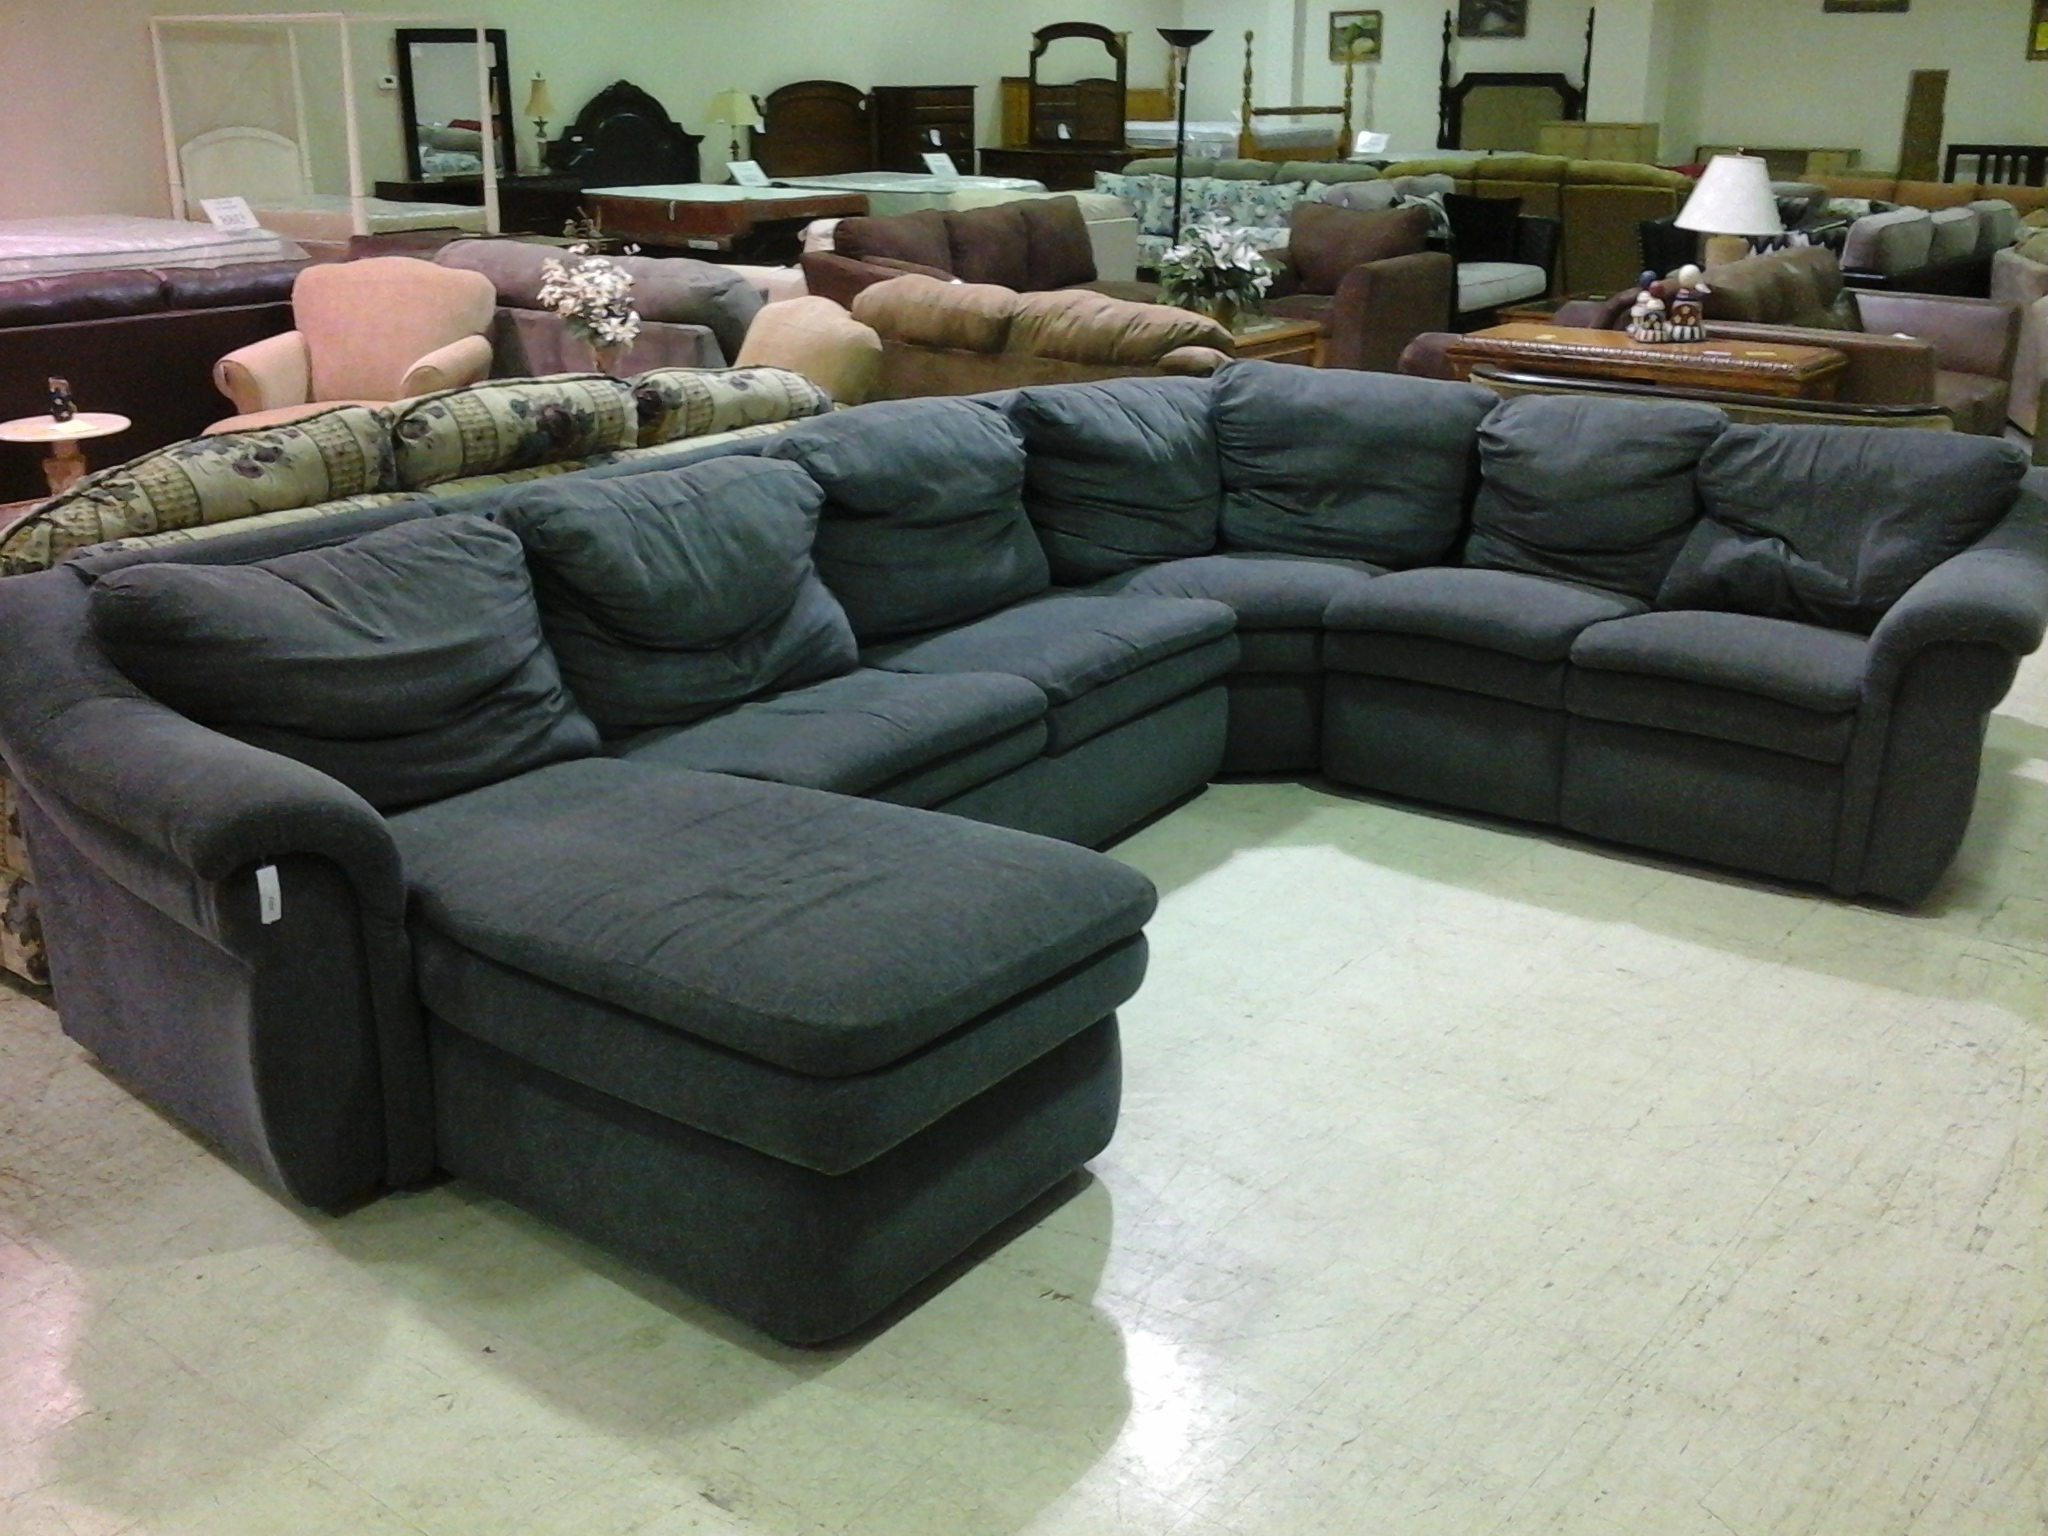 Tampa Fl Sectional Sofas Pertaining To Latest Awesome Sectional Sofas Tampa Fl – Buildsimplehome (View 12 of 15)